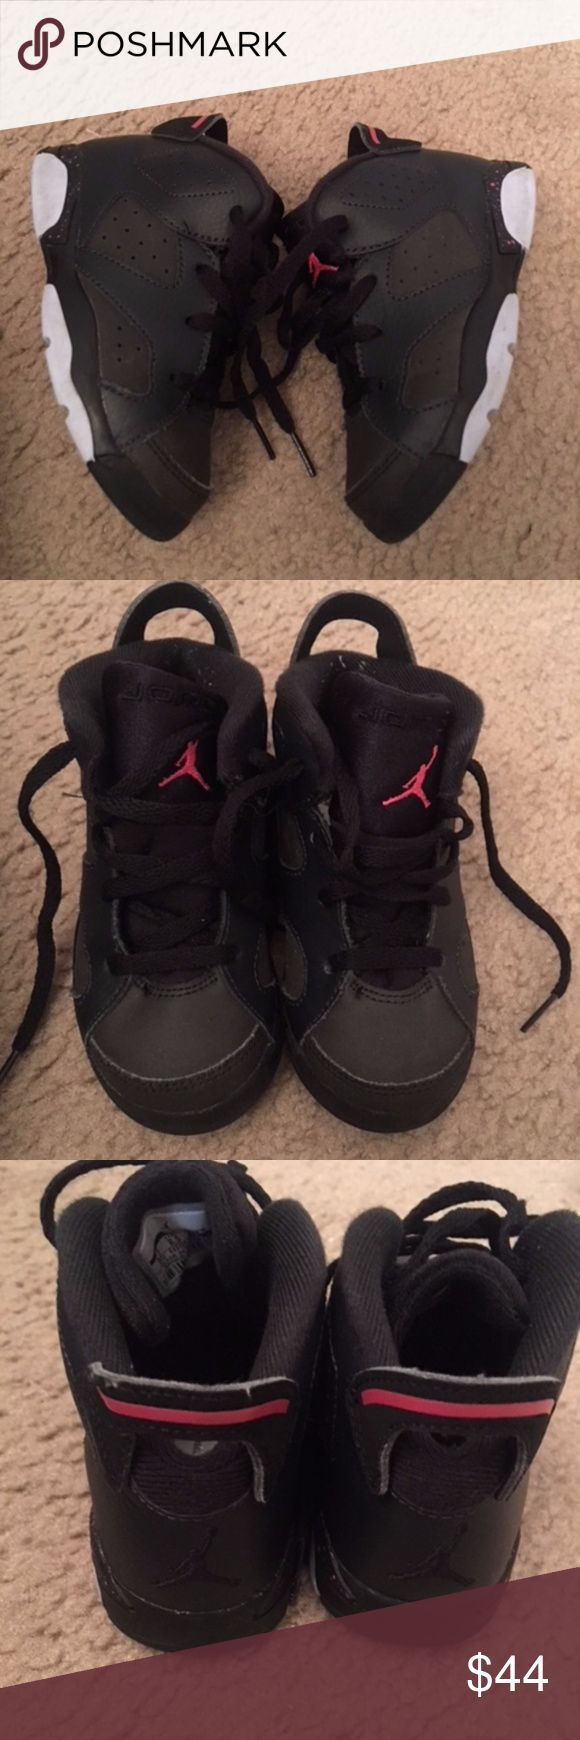 Size 9c Pink and Black Jordans Great condition..no scuffs or scrapes Jordan Shoes Sneakers